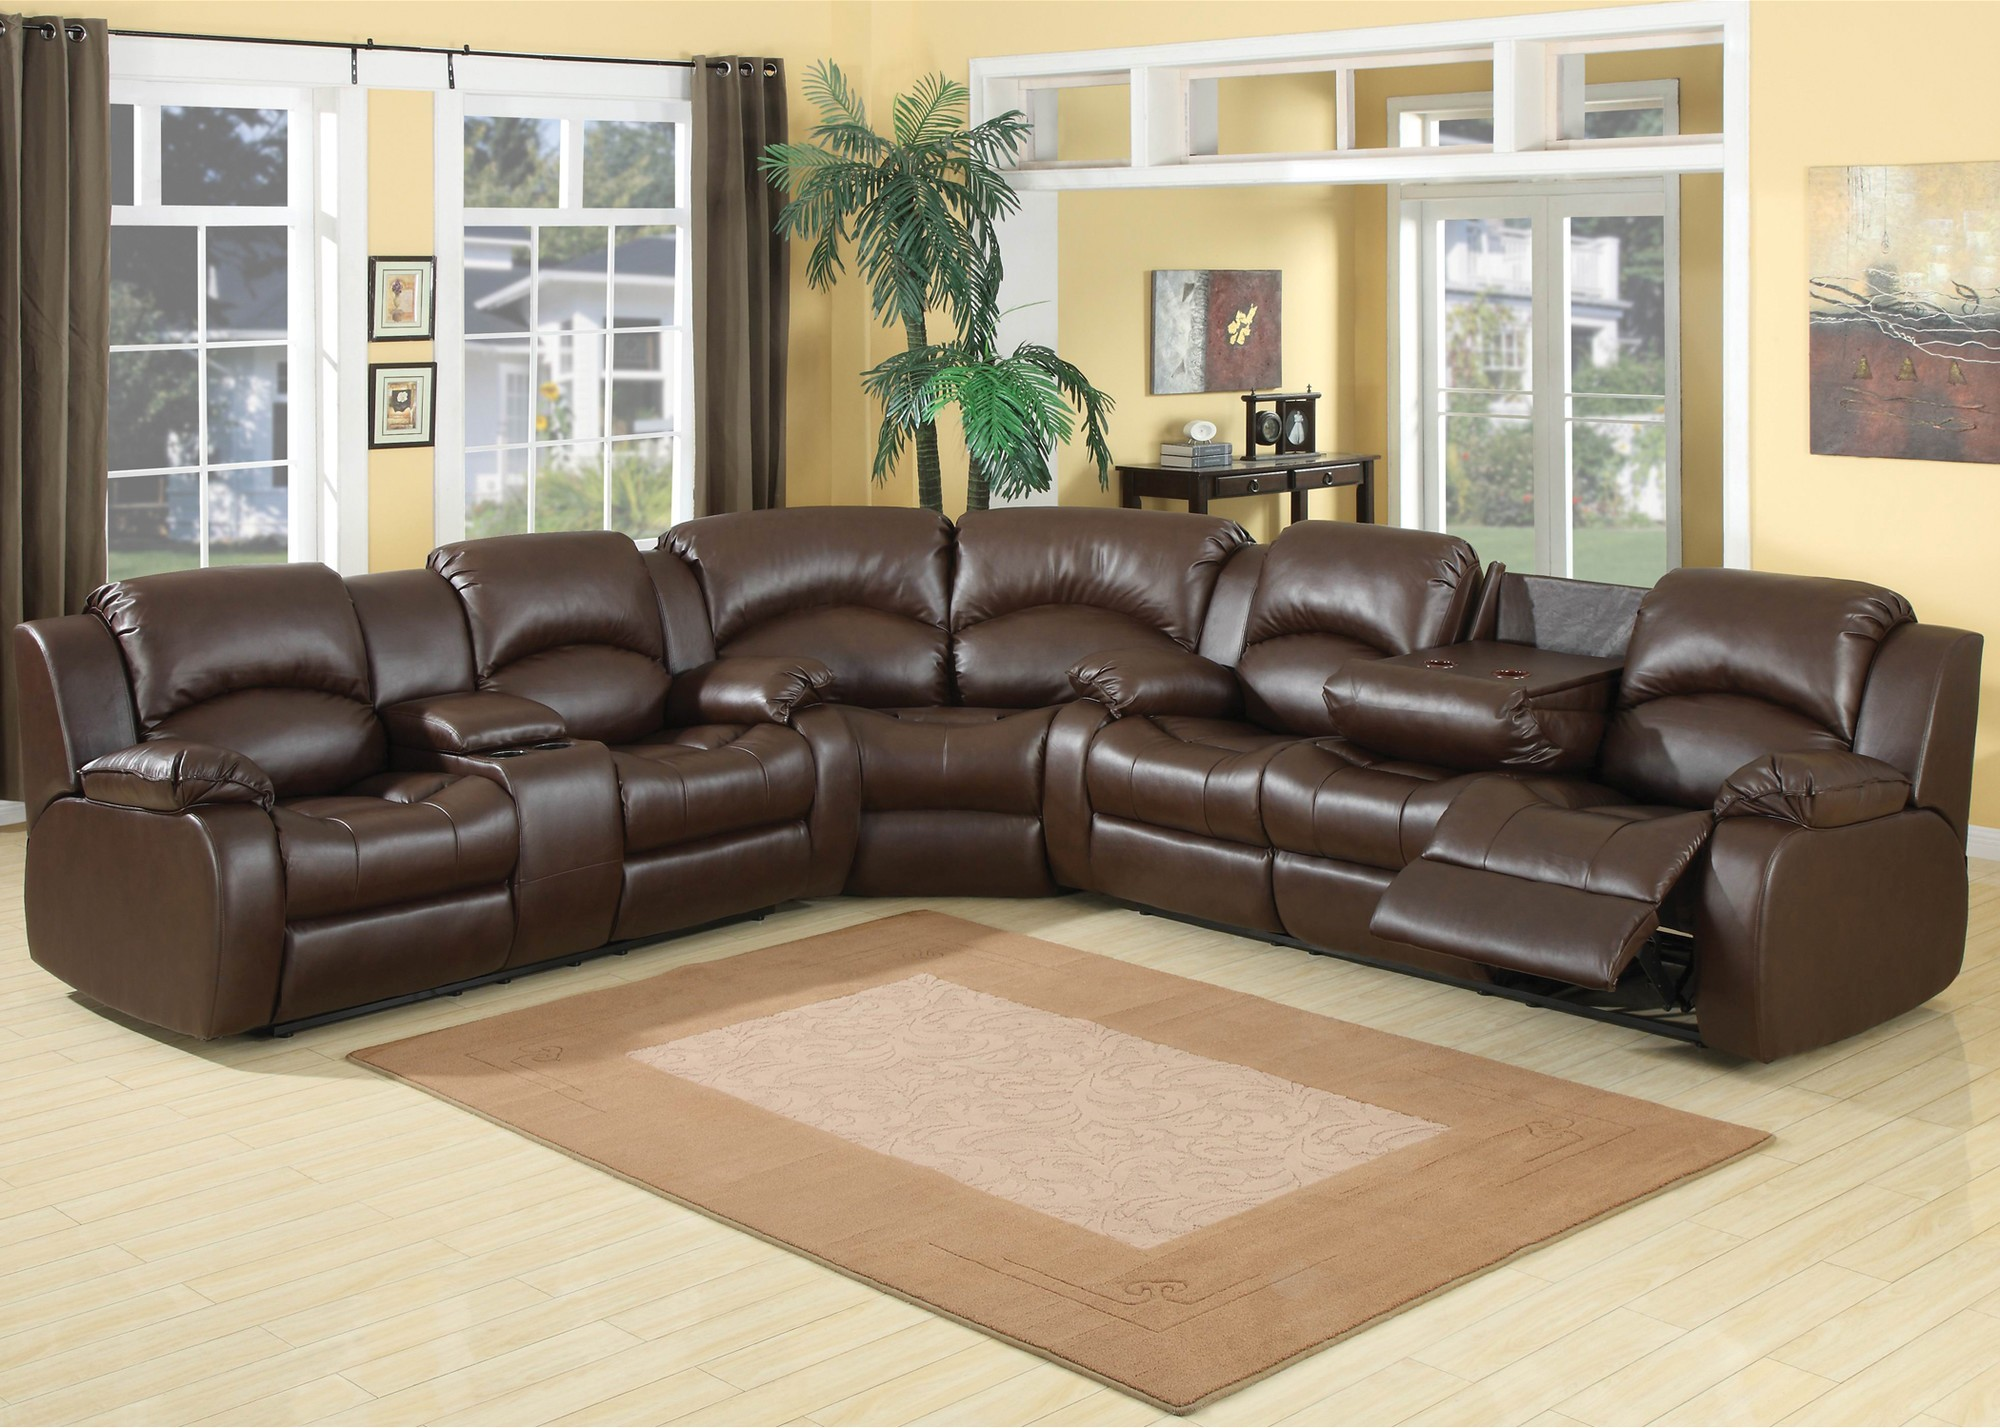 Best Sectional sofa Excellent Nice Unique Best Sectional sofa for the Money In Small Home Picture